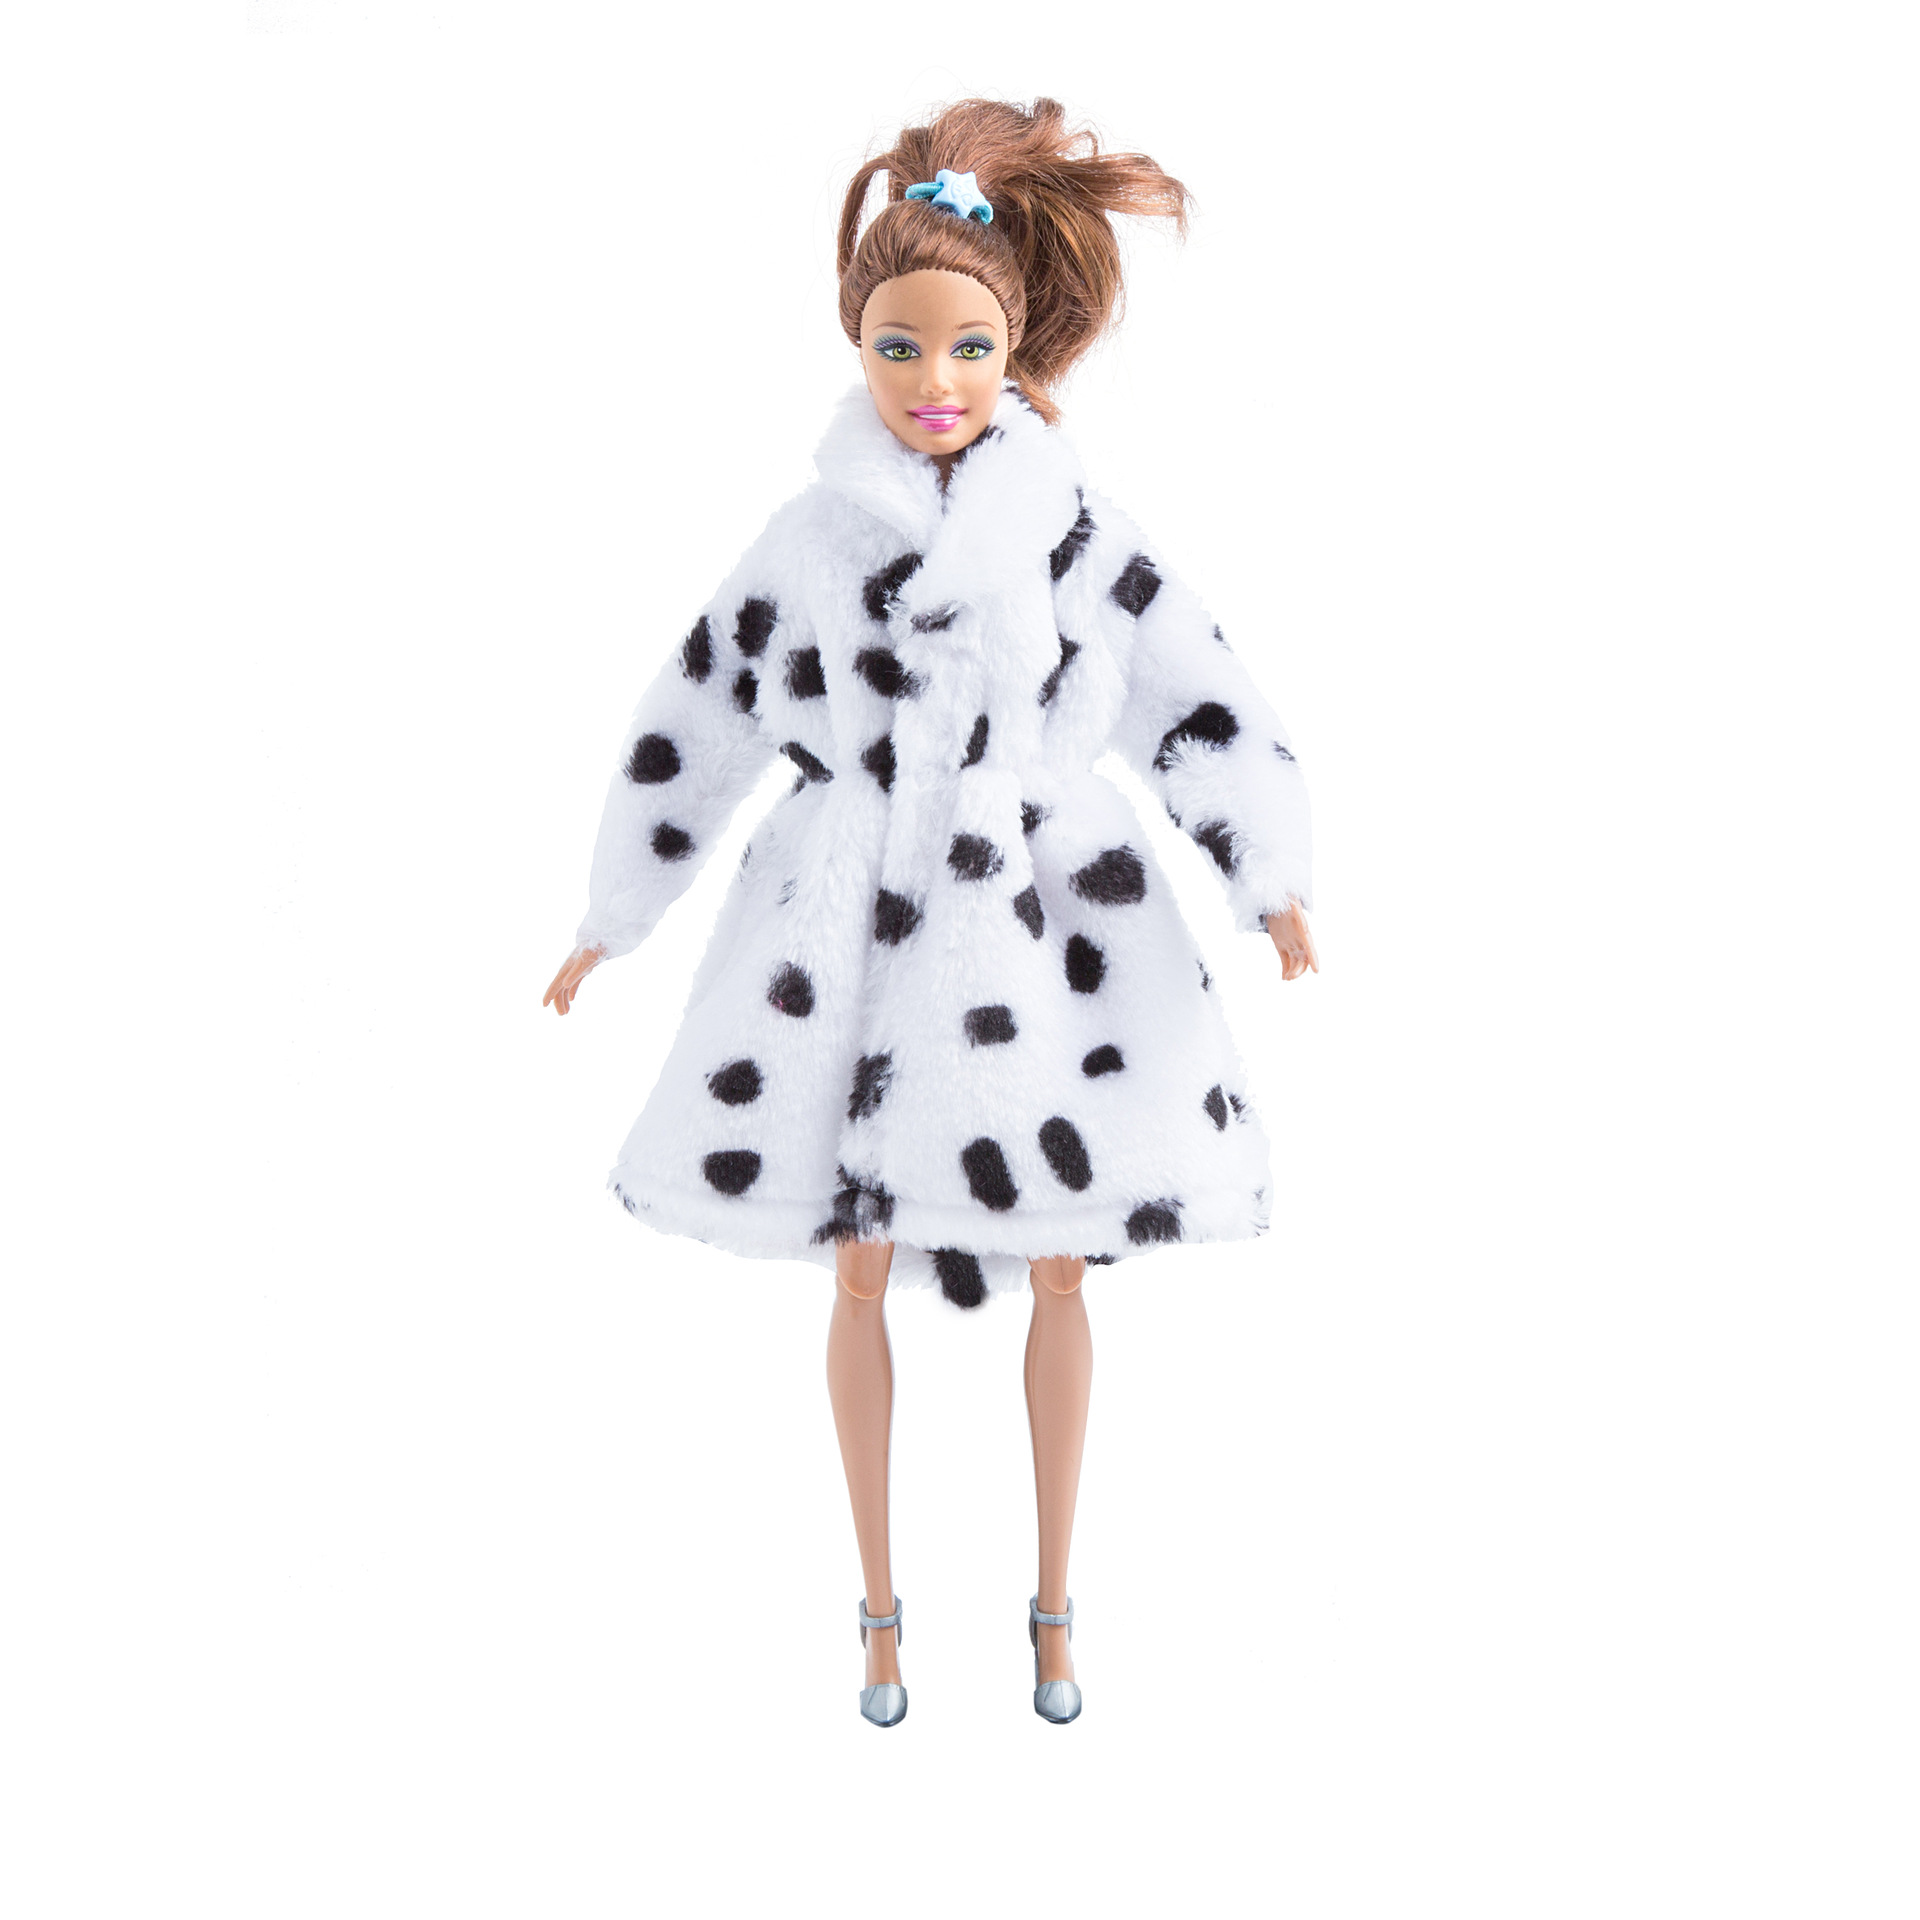 Fashion Handmade Clothes Dress Grows Outfit Dairy cow pattern ...